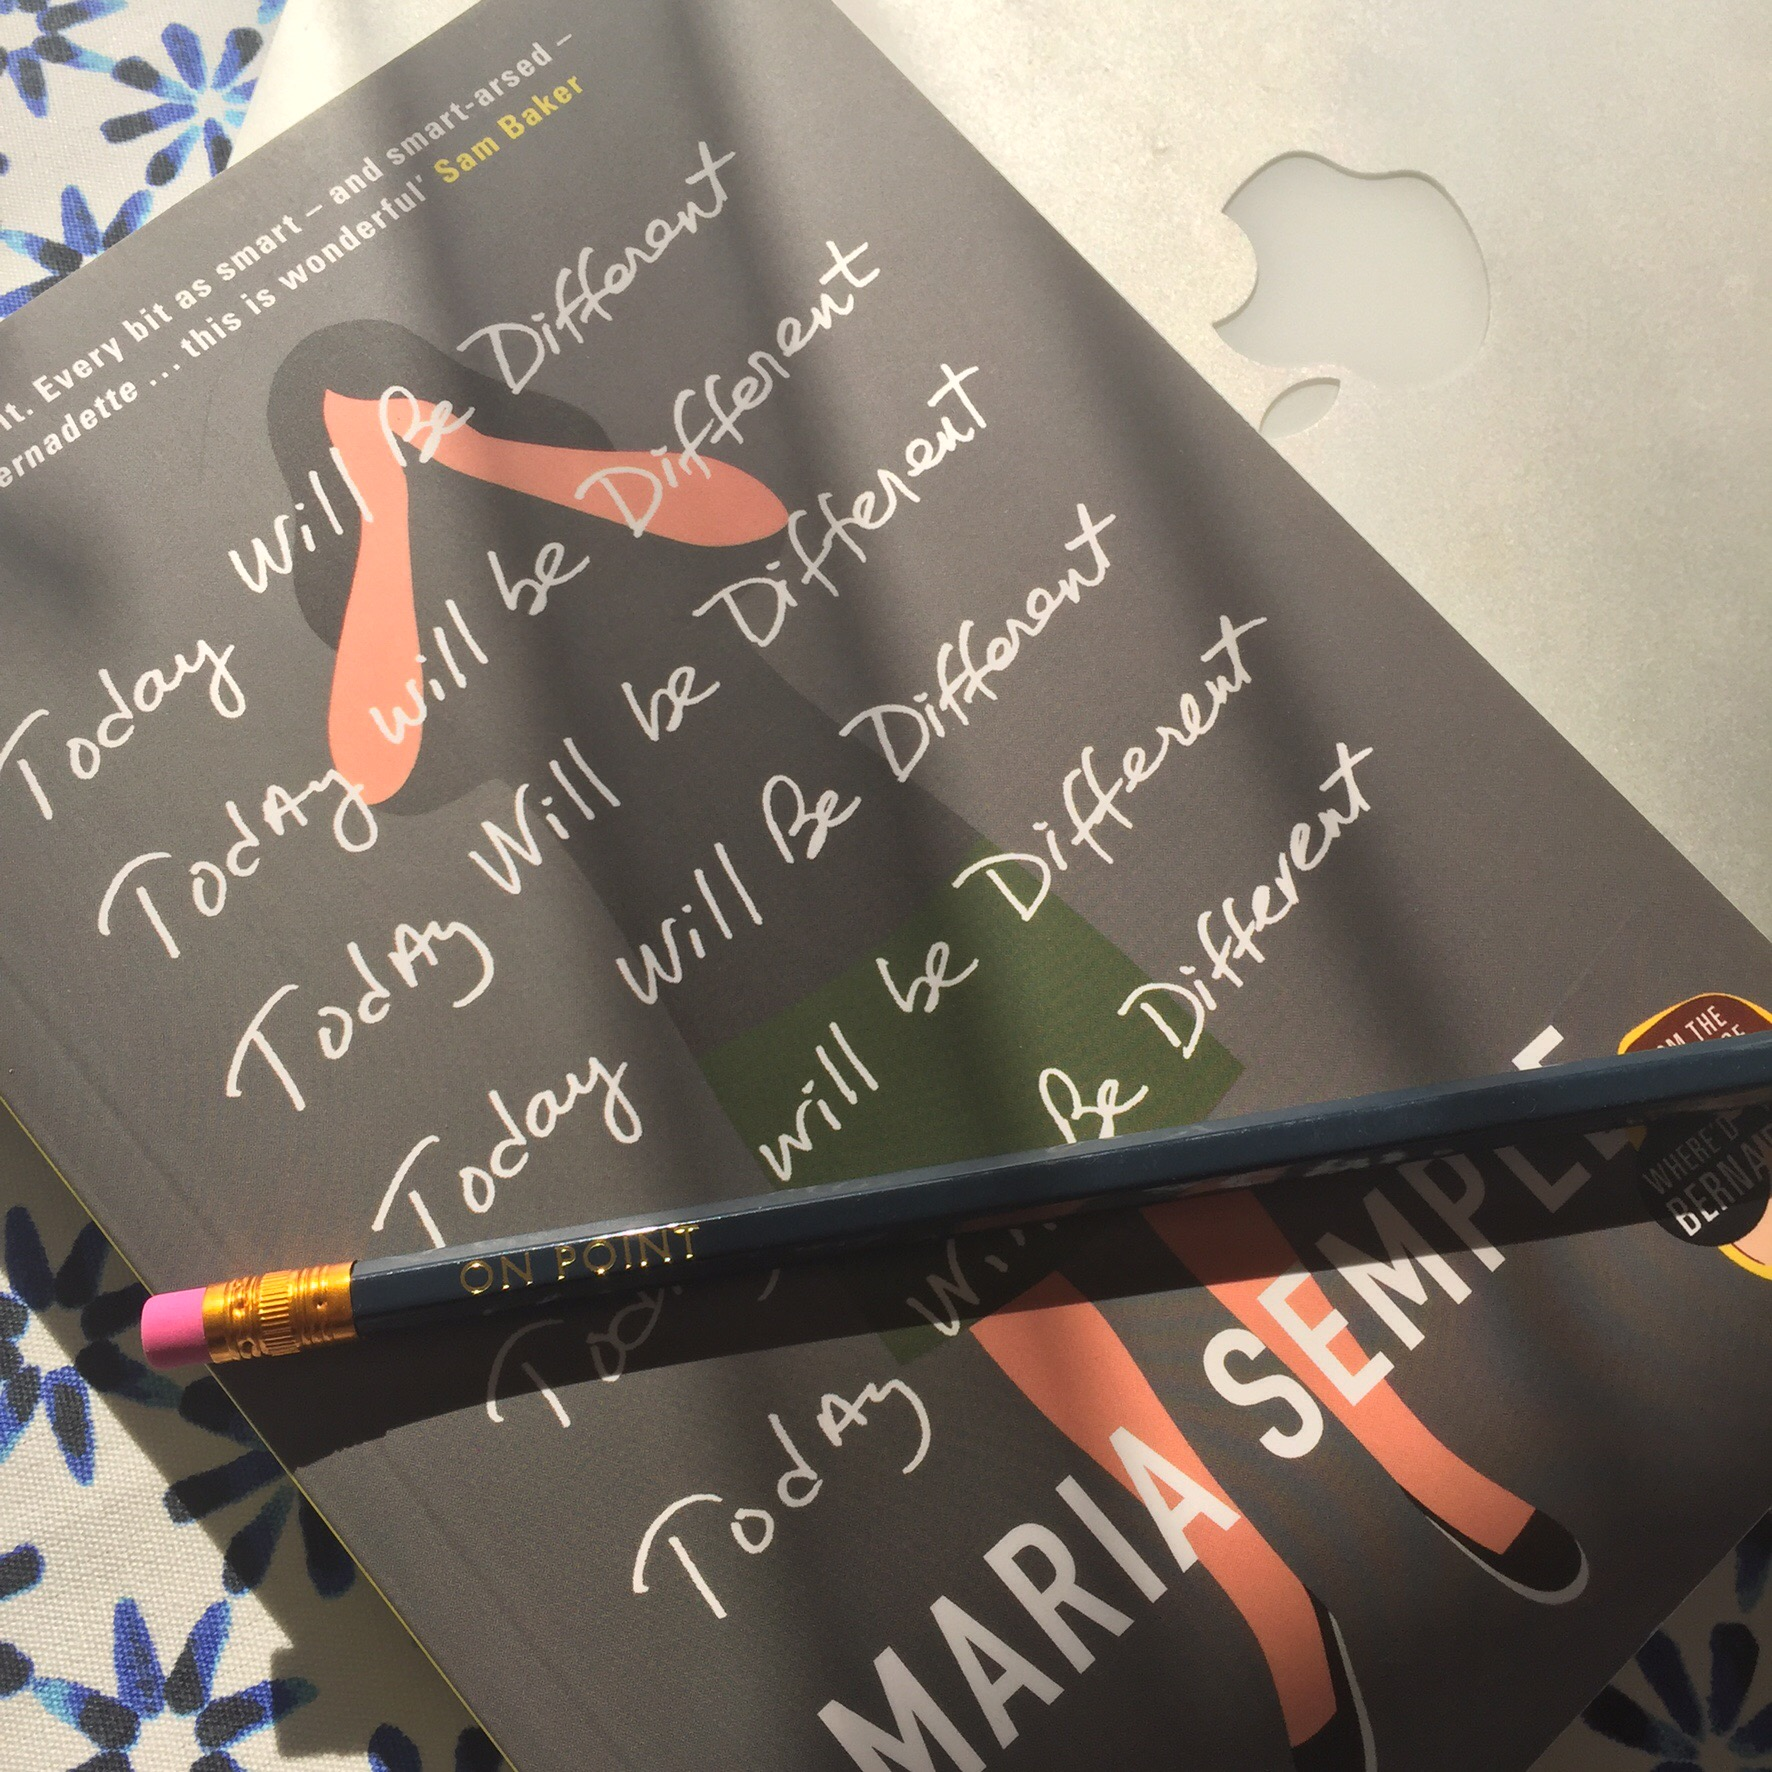 Today Will Be Different: Maria Semple blog tour